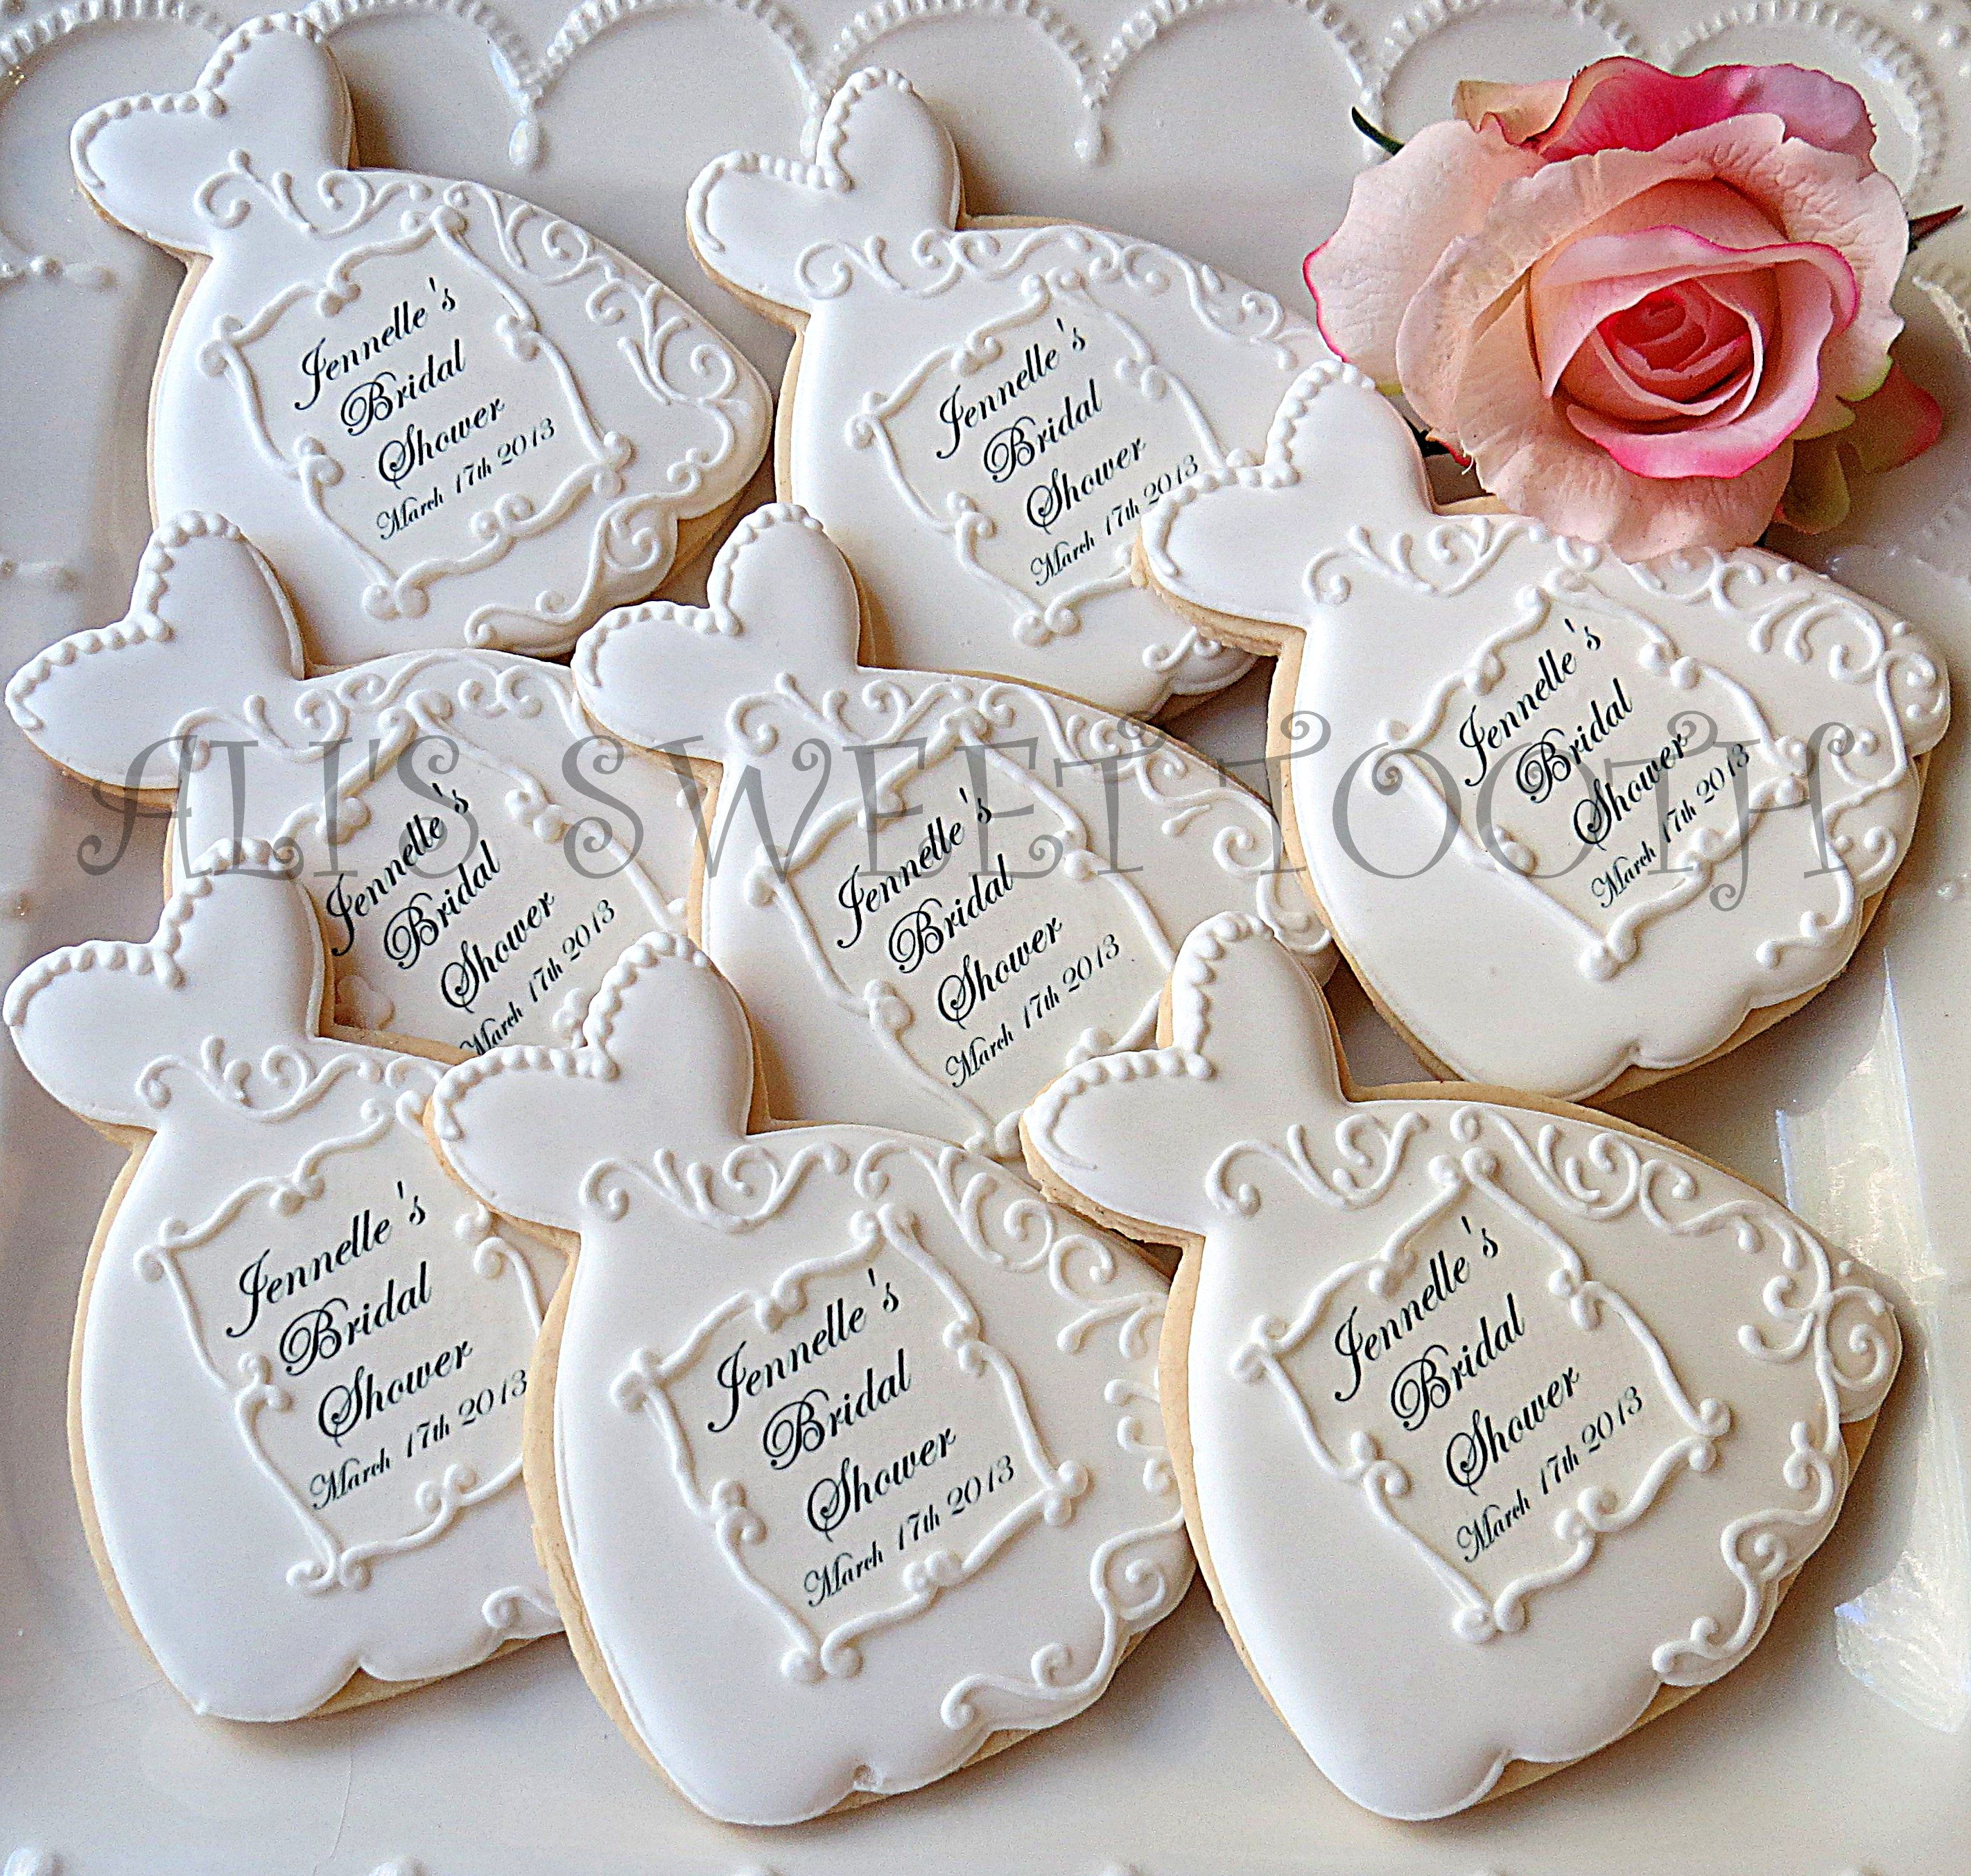 Wedding cookie favors | Cookie Art | Pinterest | Cookie favors ...